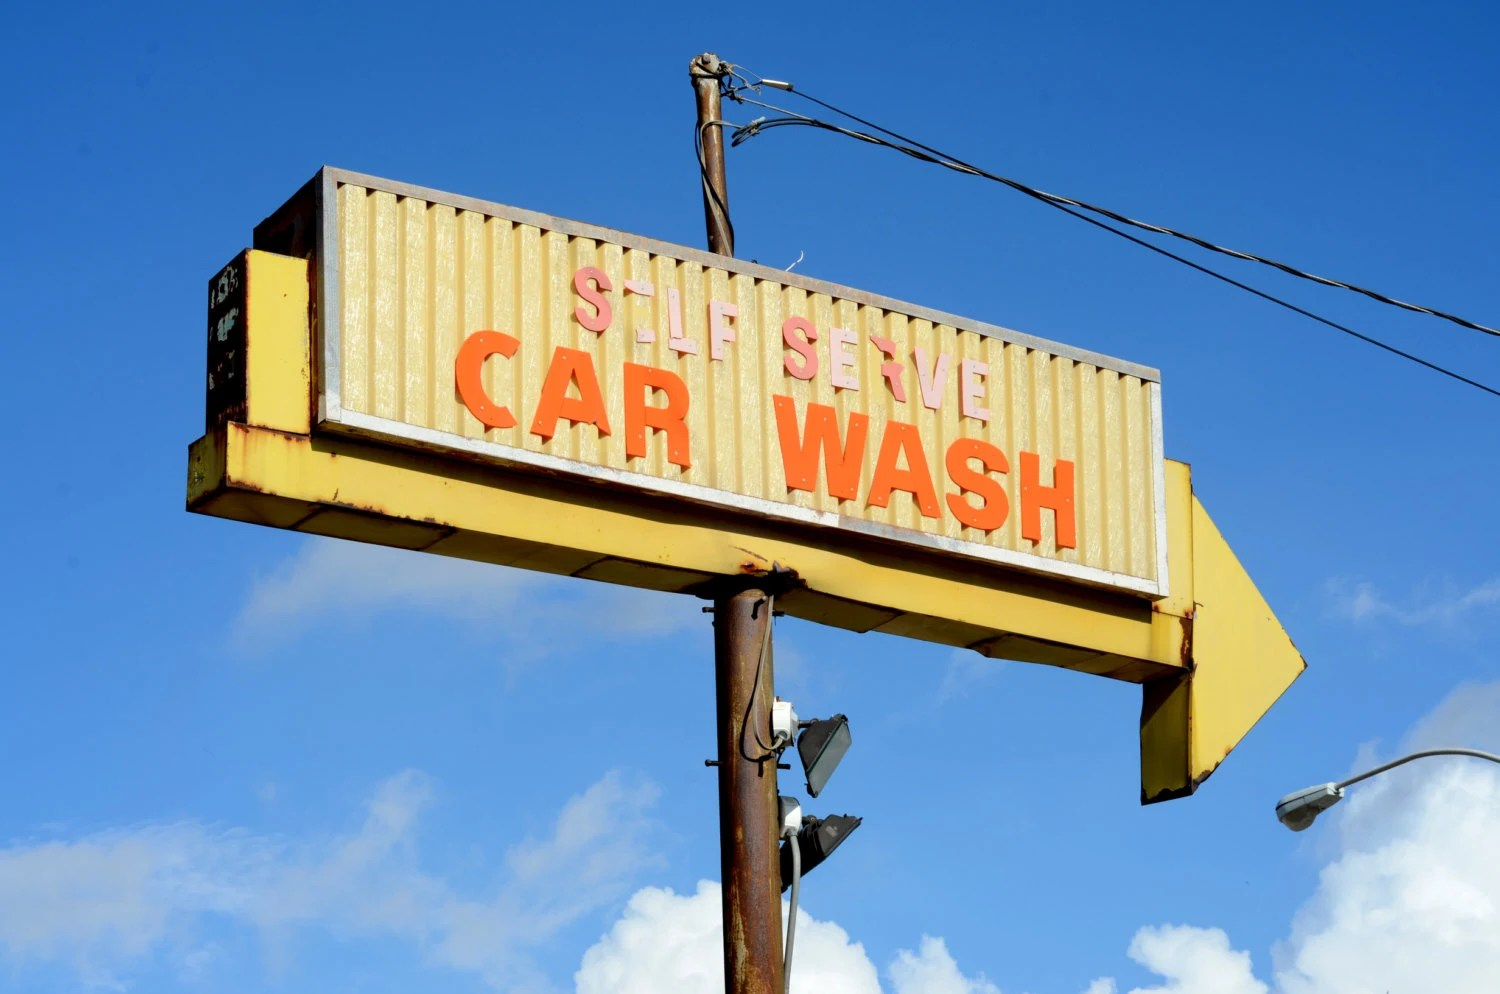 Car Wash - ClassicImagery